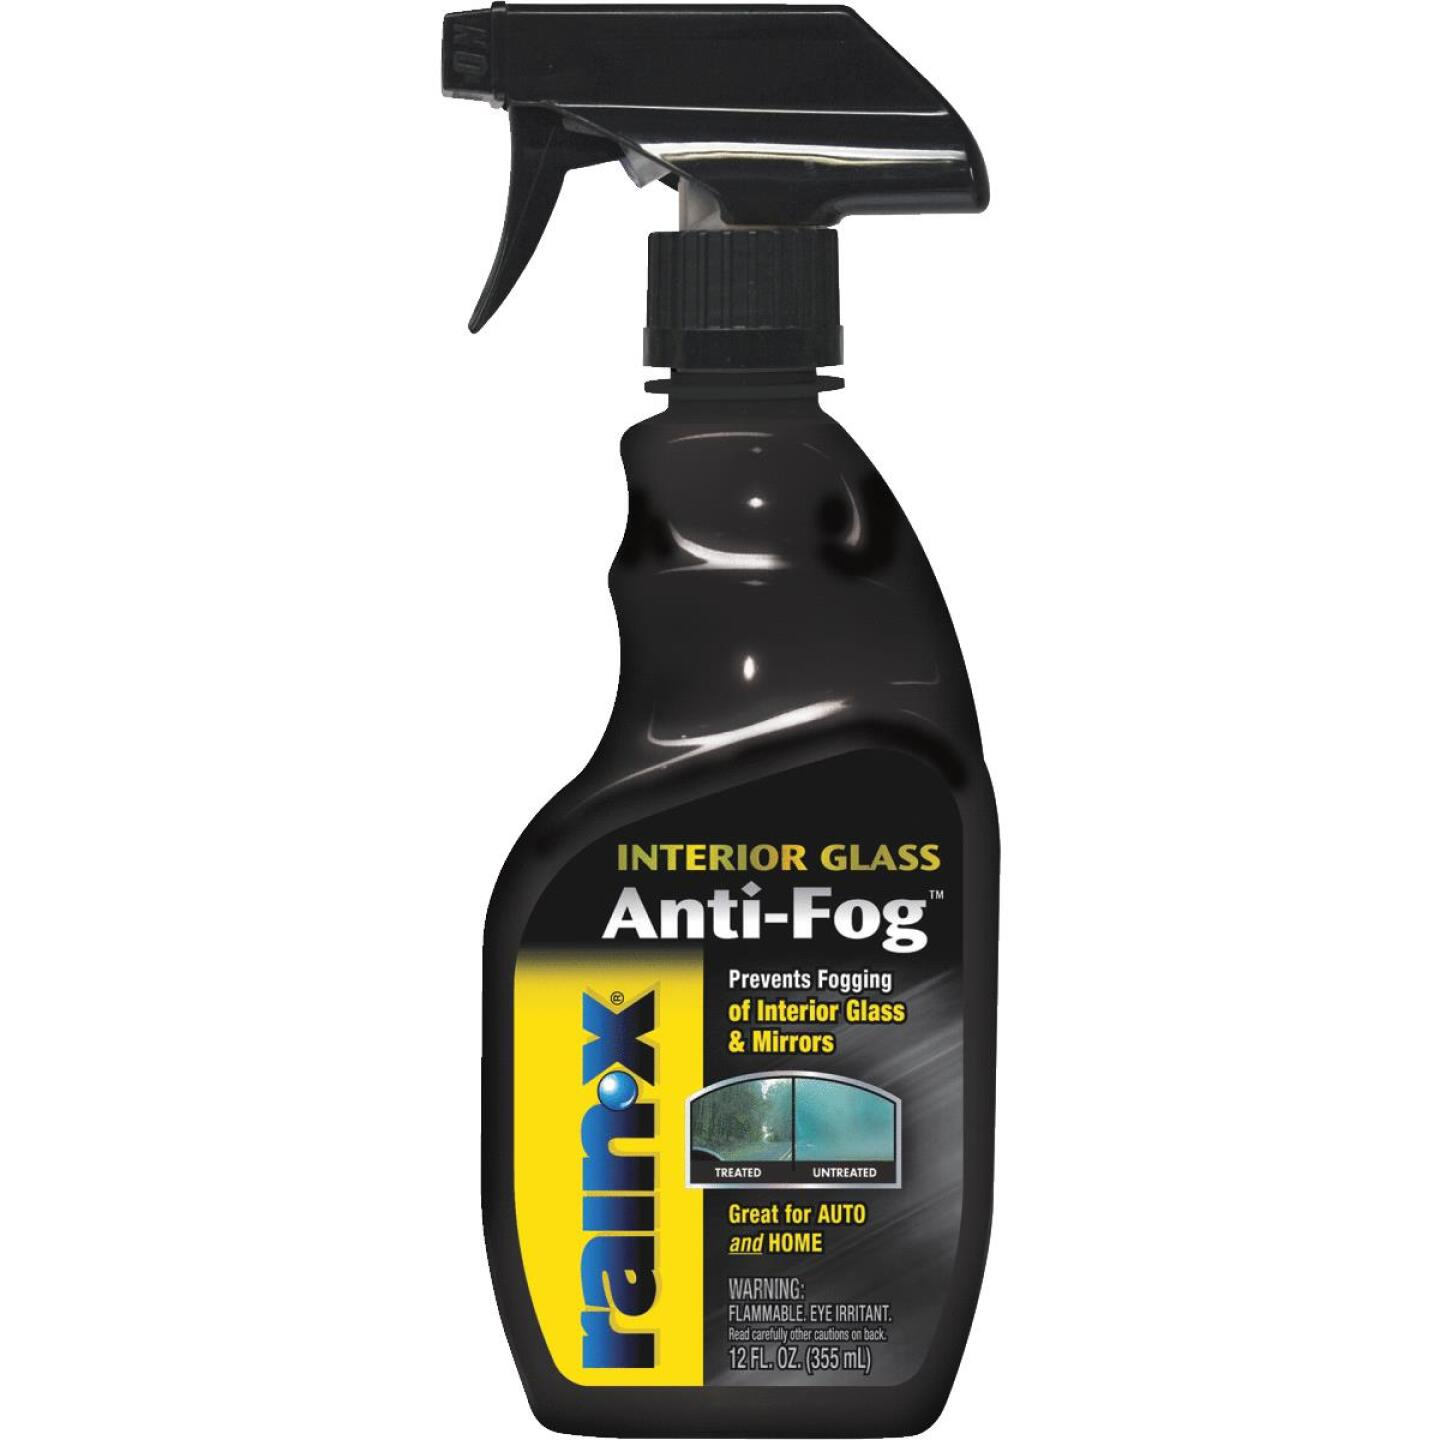 RAIN-X 12 oz Liquid Anti-fog Cleaner Image 1